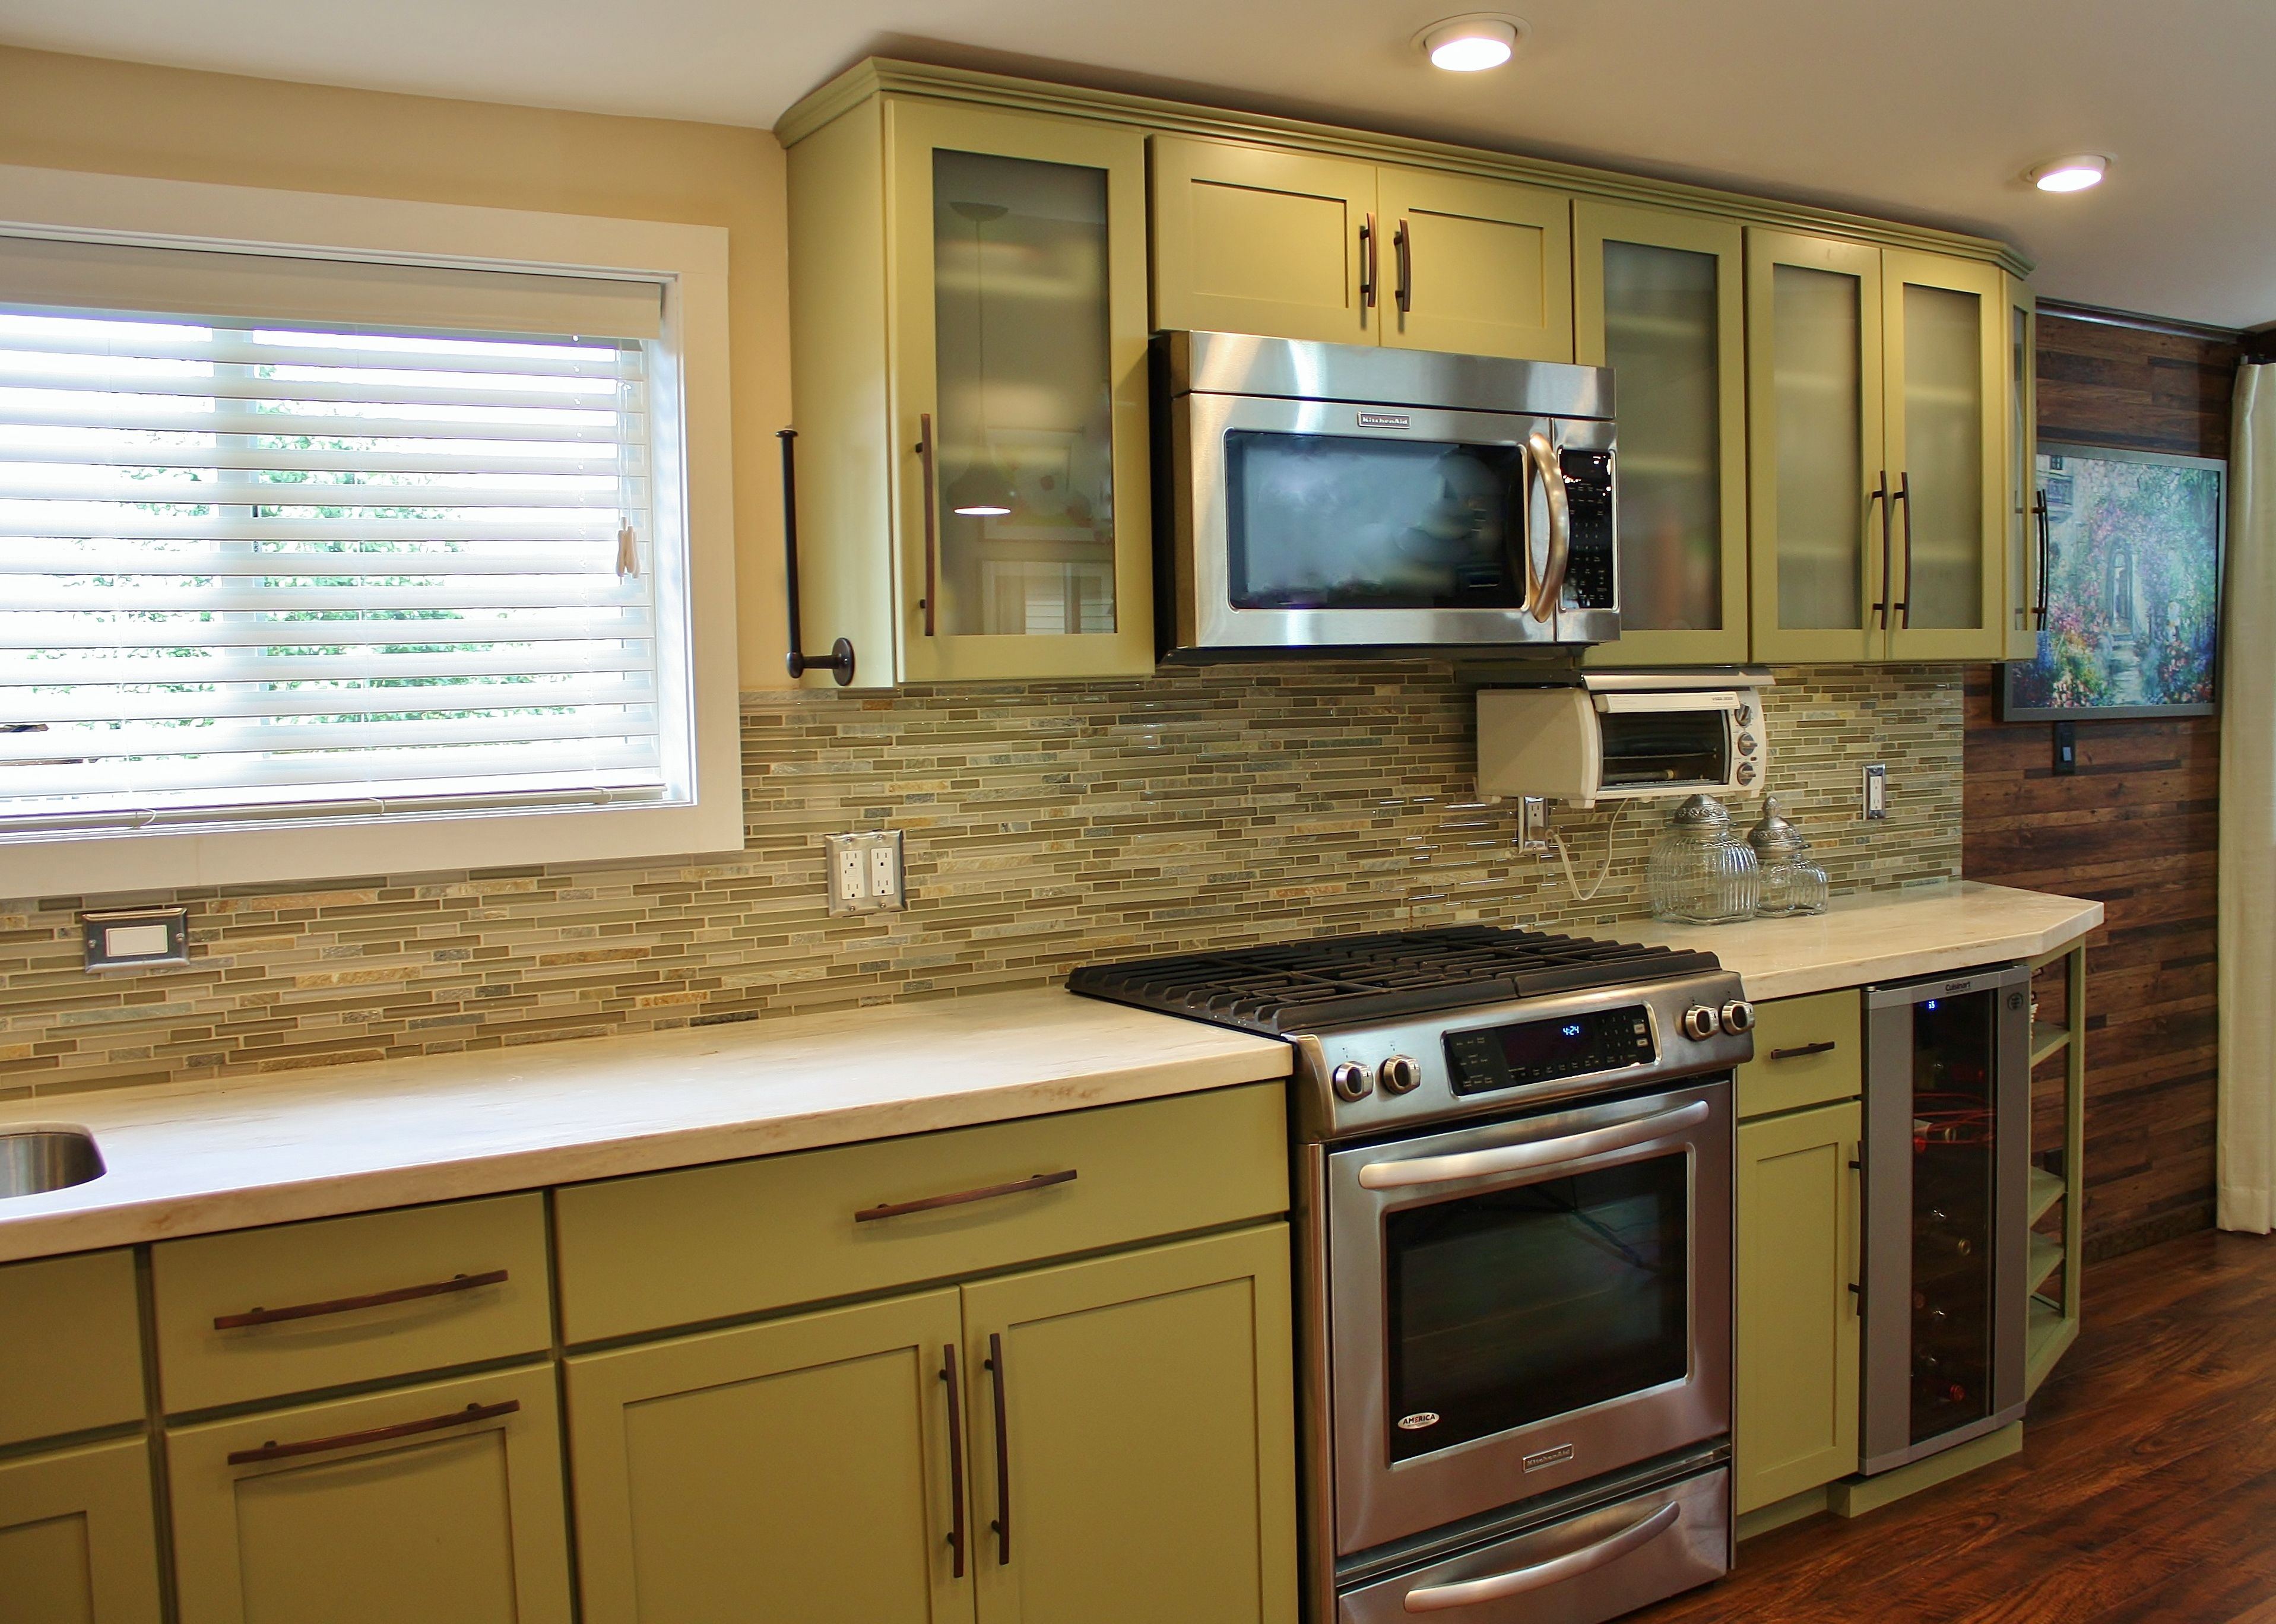 Holiday kitchens seattle shaker cabinets corian solid for Kitchen cabinets seattle